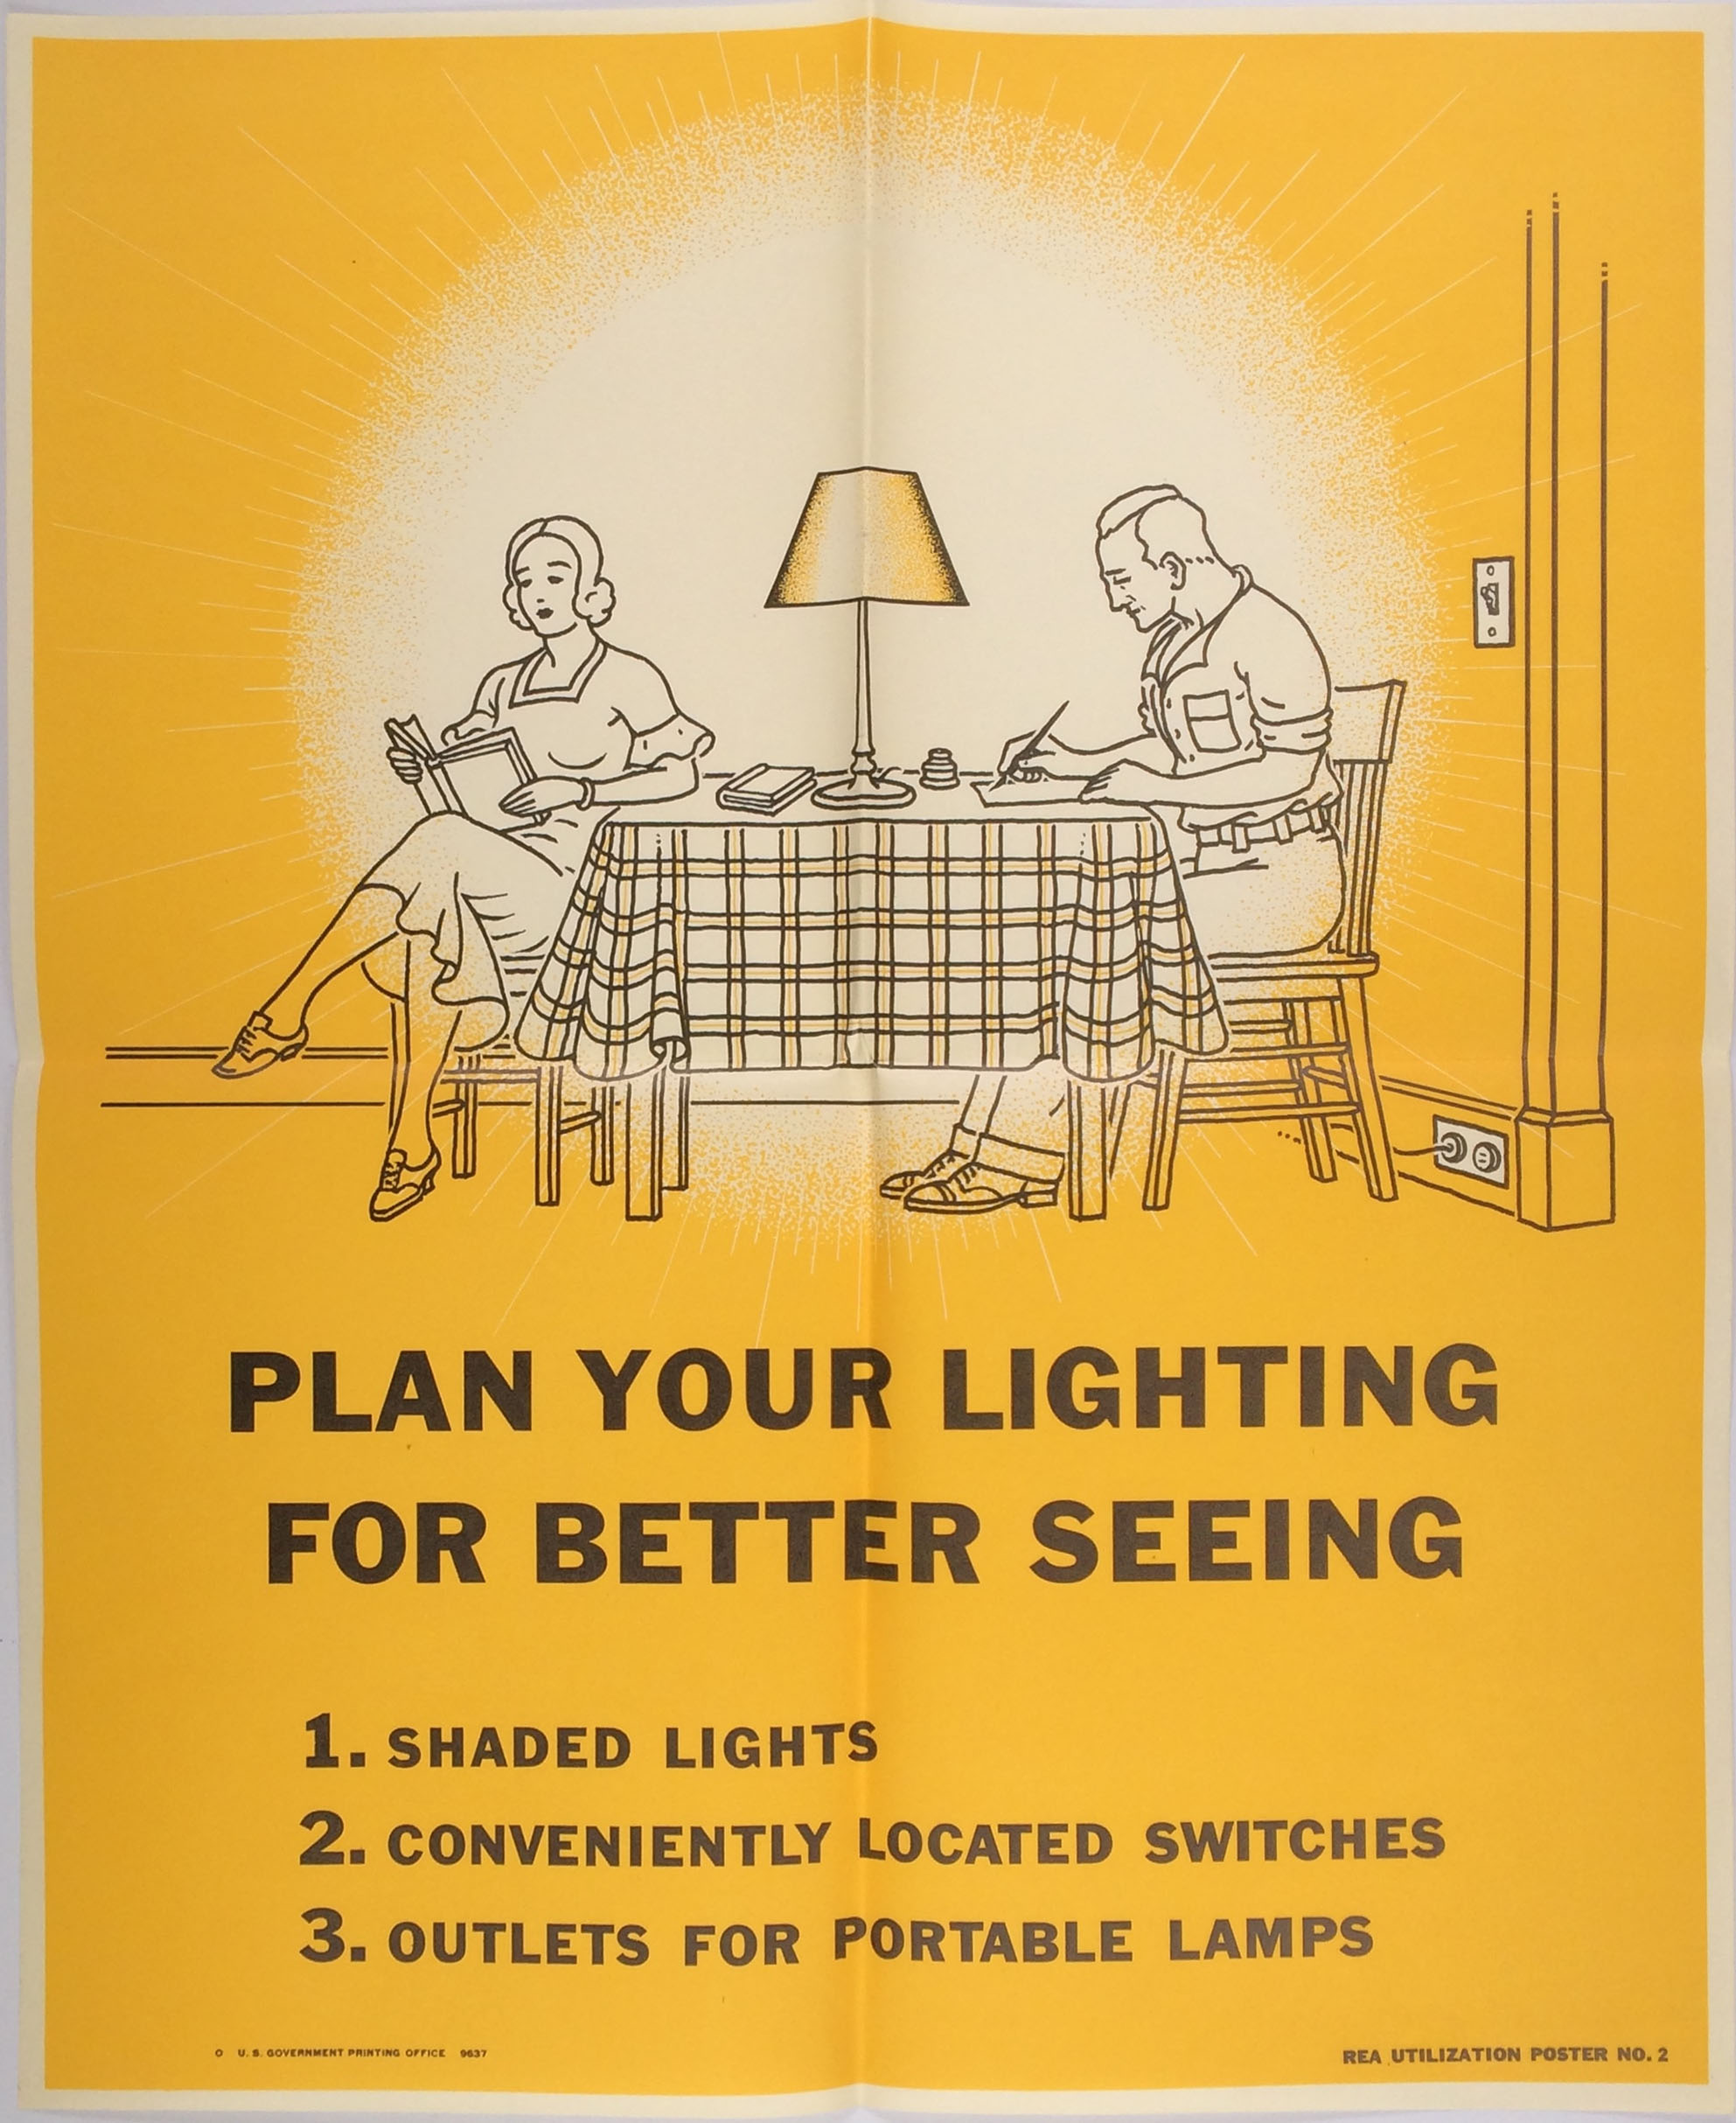 """Plan Your Lighting for Better Seeing,"" poster from First Steps in Load Building, Rural Electrification Administration, 1937. Office Files of Harlow S. Person, 1936–1953, Records of the Rural Electrification Administration, Record Group 221, National Archives Identifier 1872021, HMS ID A1 34."